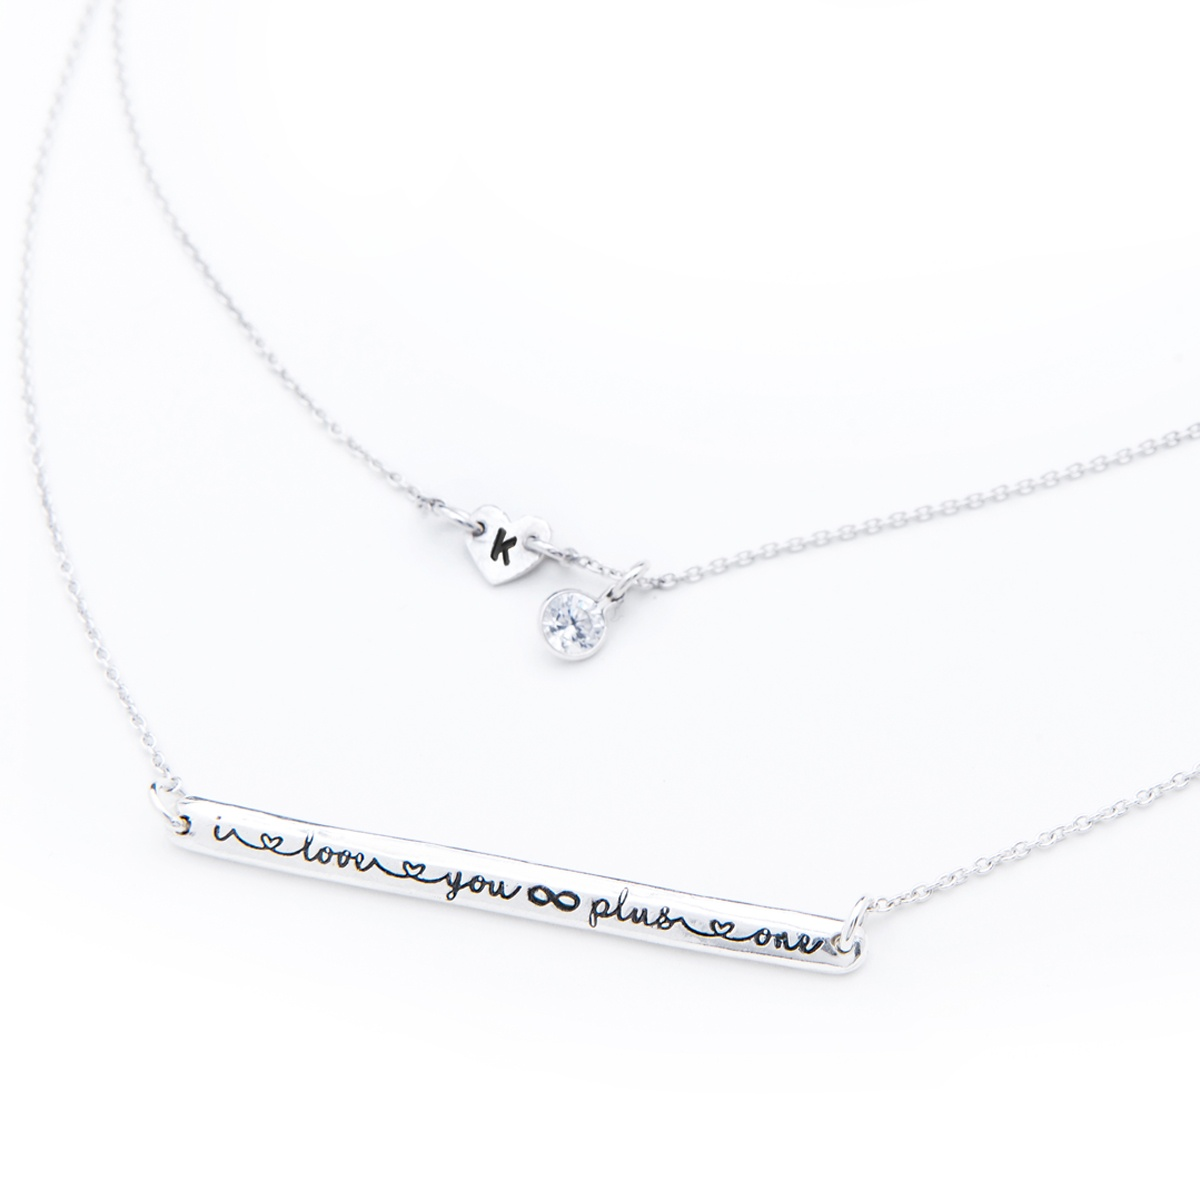 i love you infinity necklace. Handmade jewellery for you, Personalise with an initial and your choice of gemstone.